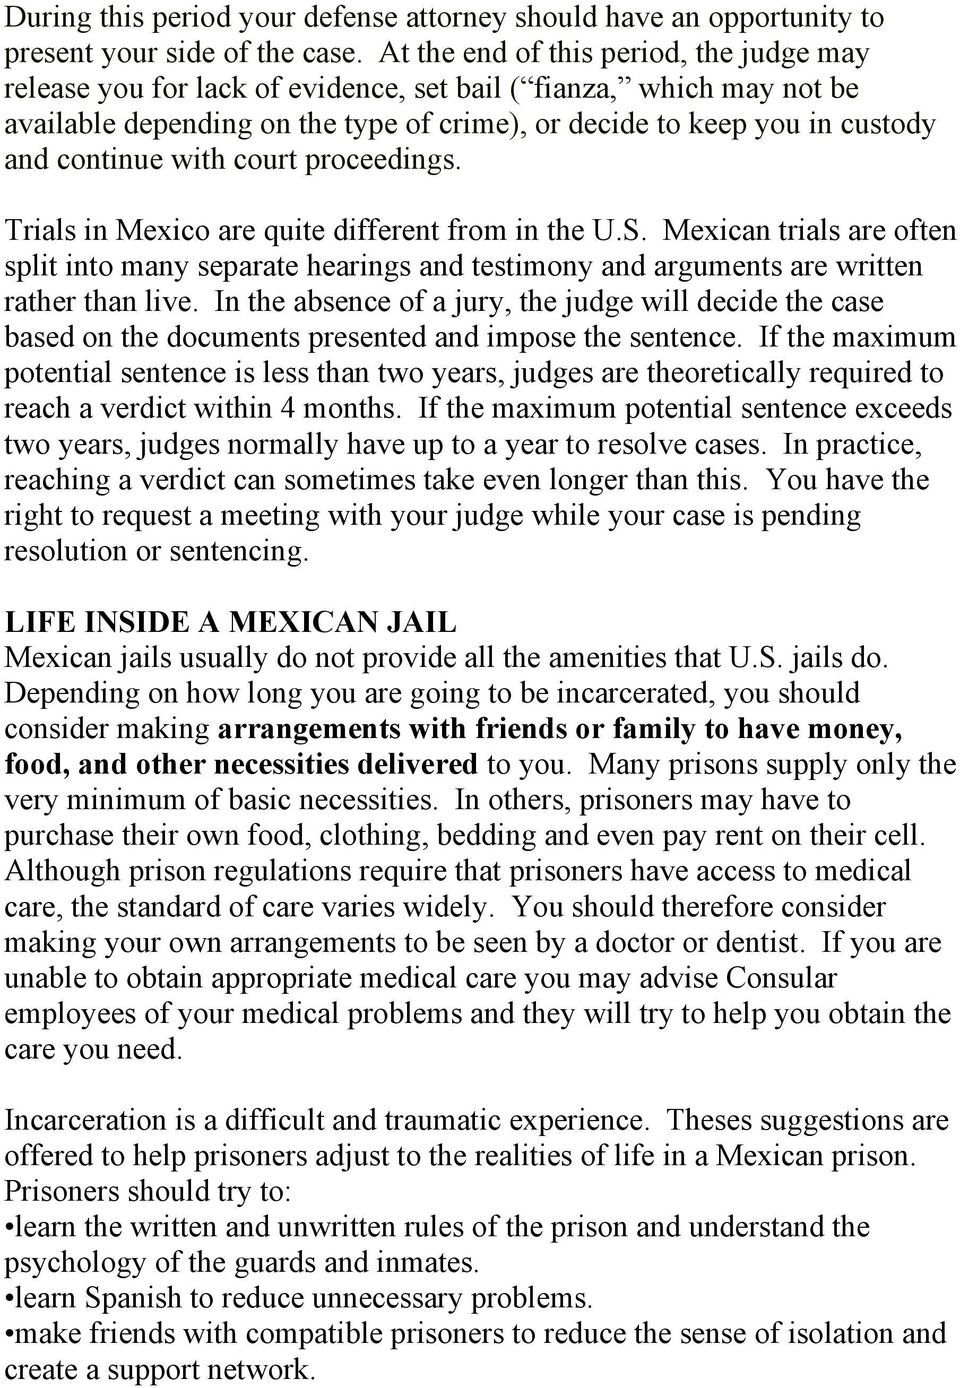 with court proceedings. Trials in Mexico are quite different from in the U.S. Mexican trials are often split into many separate hearings and testimony and arguments are written rather than live.